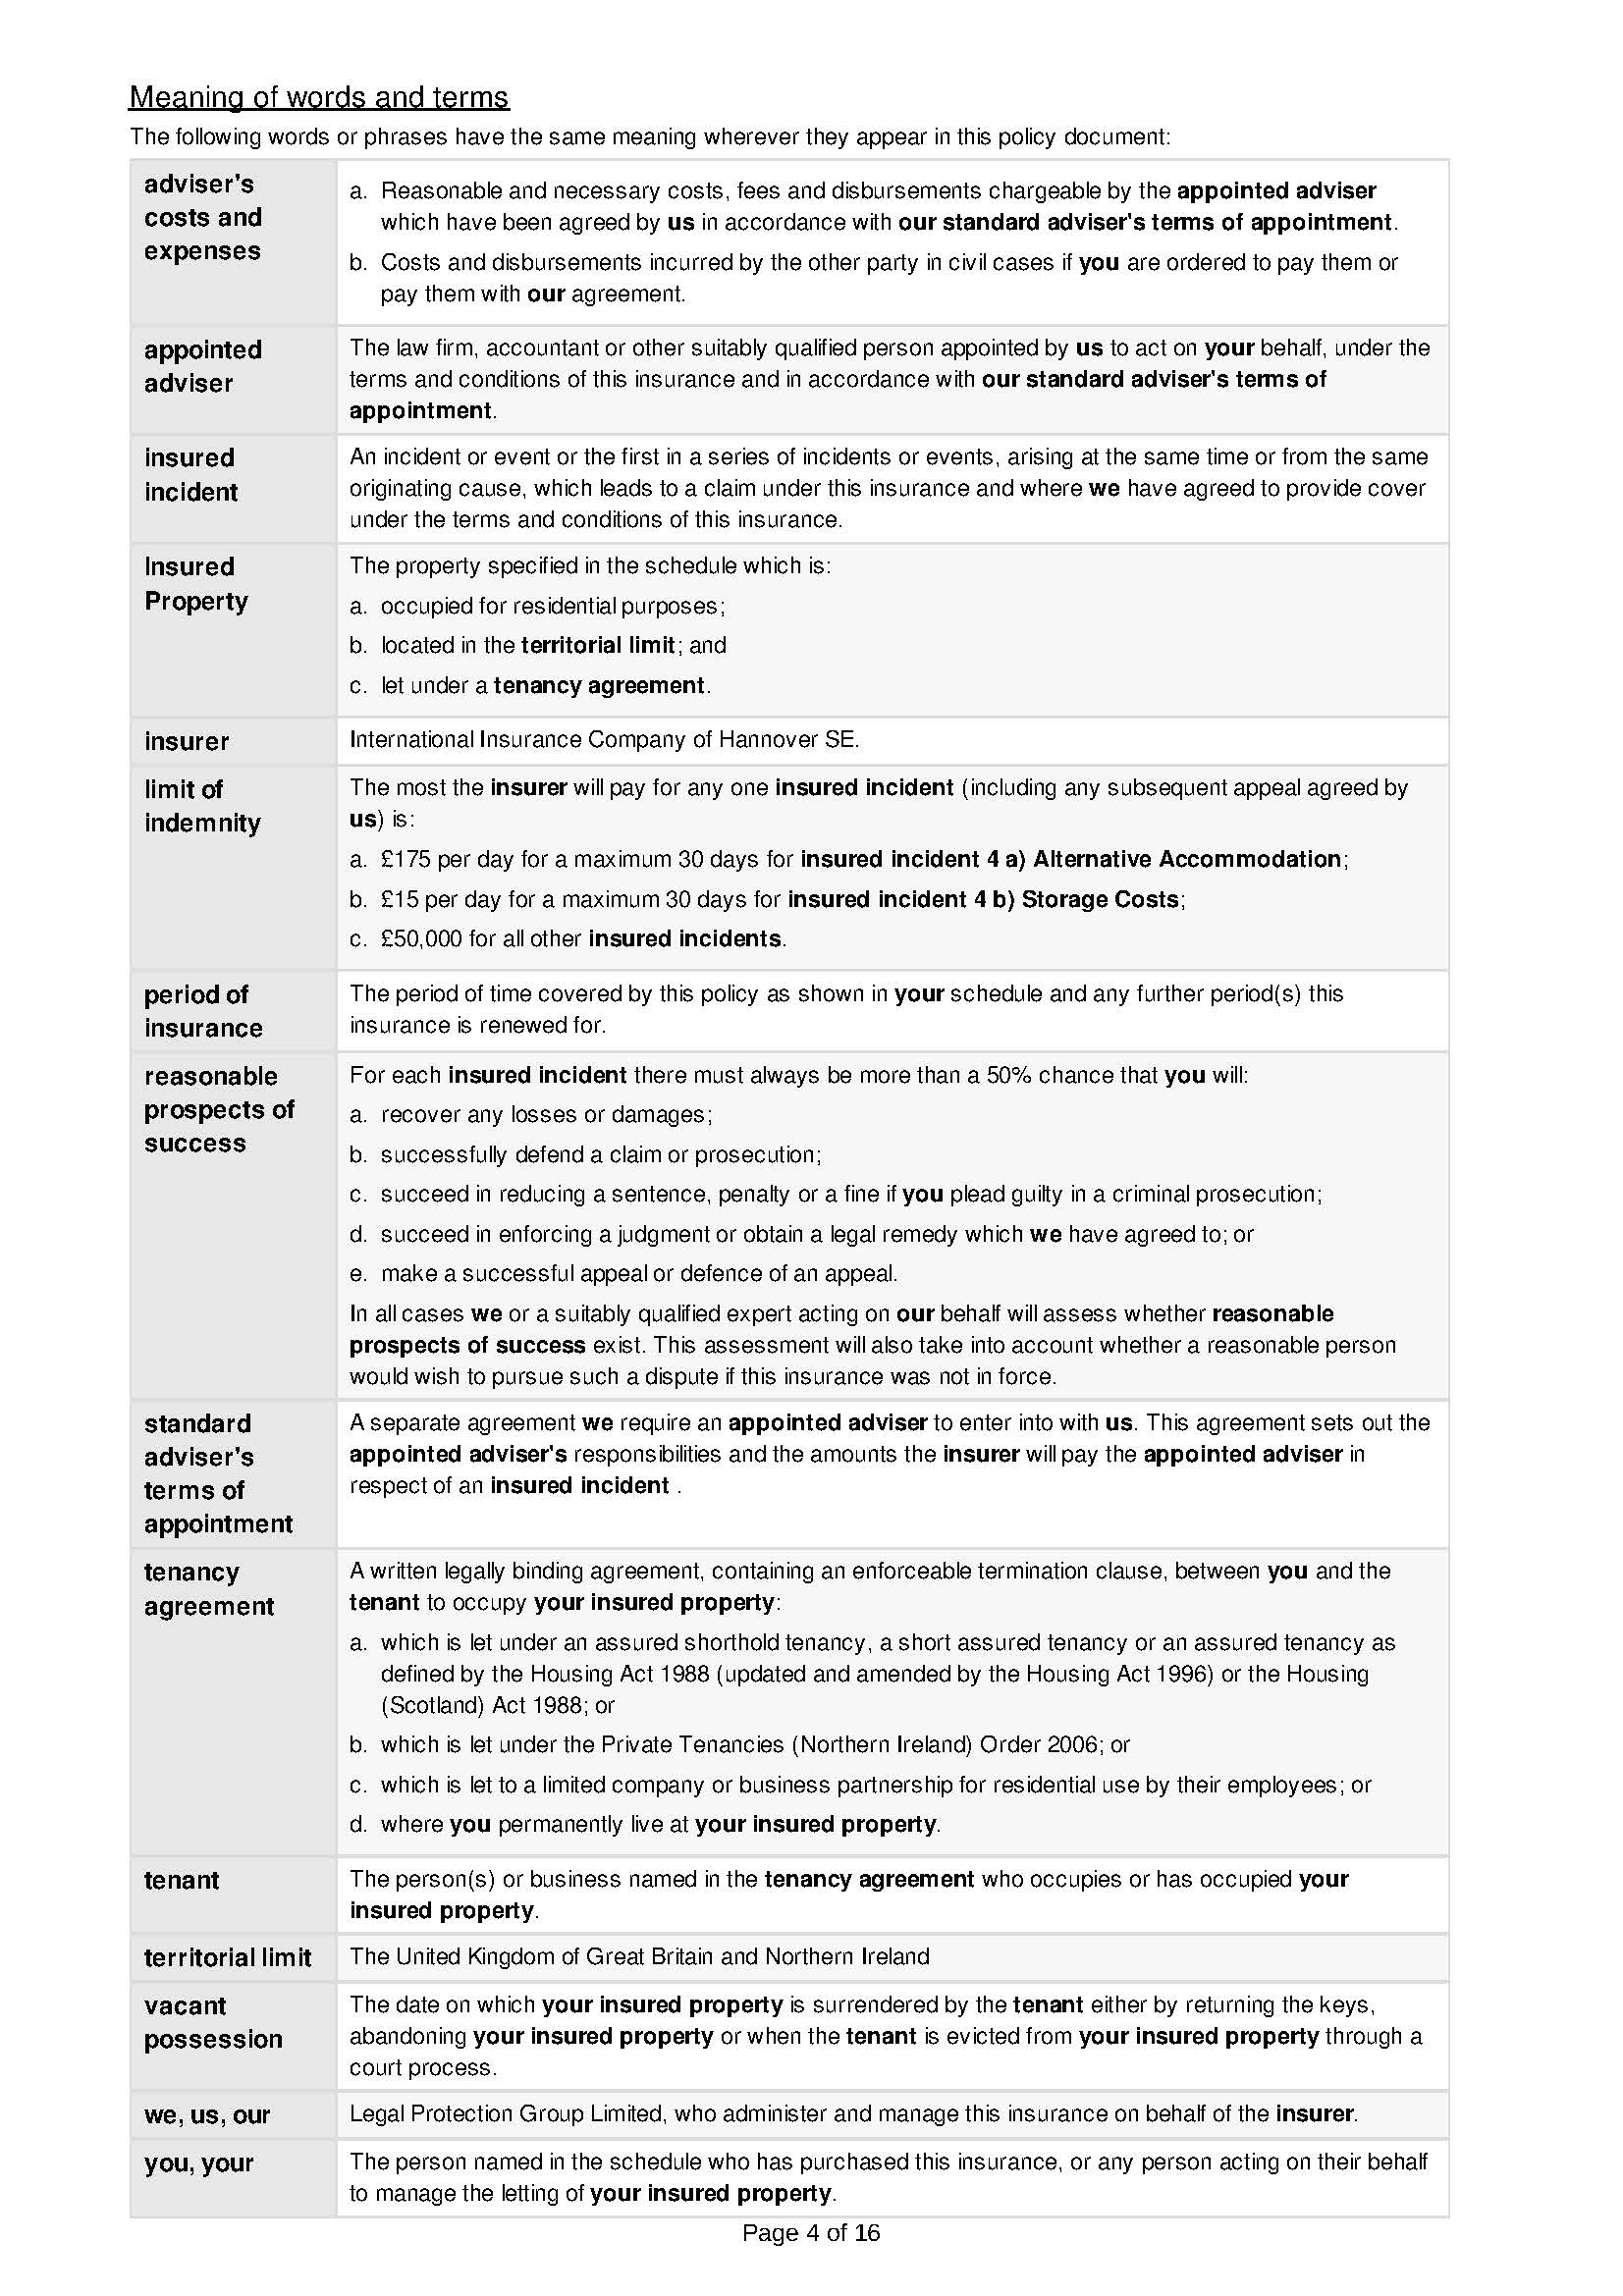 insurance_policy_02_page_04